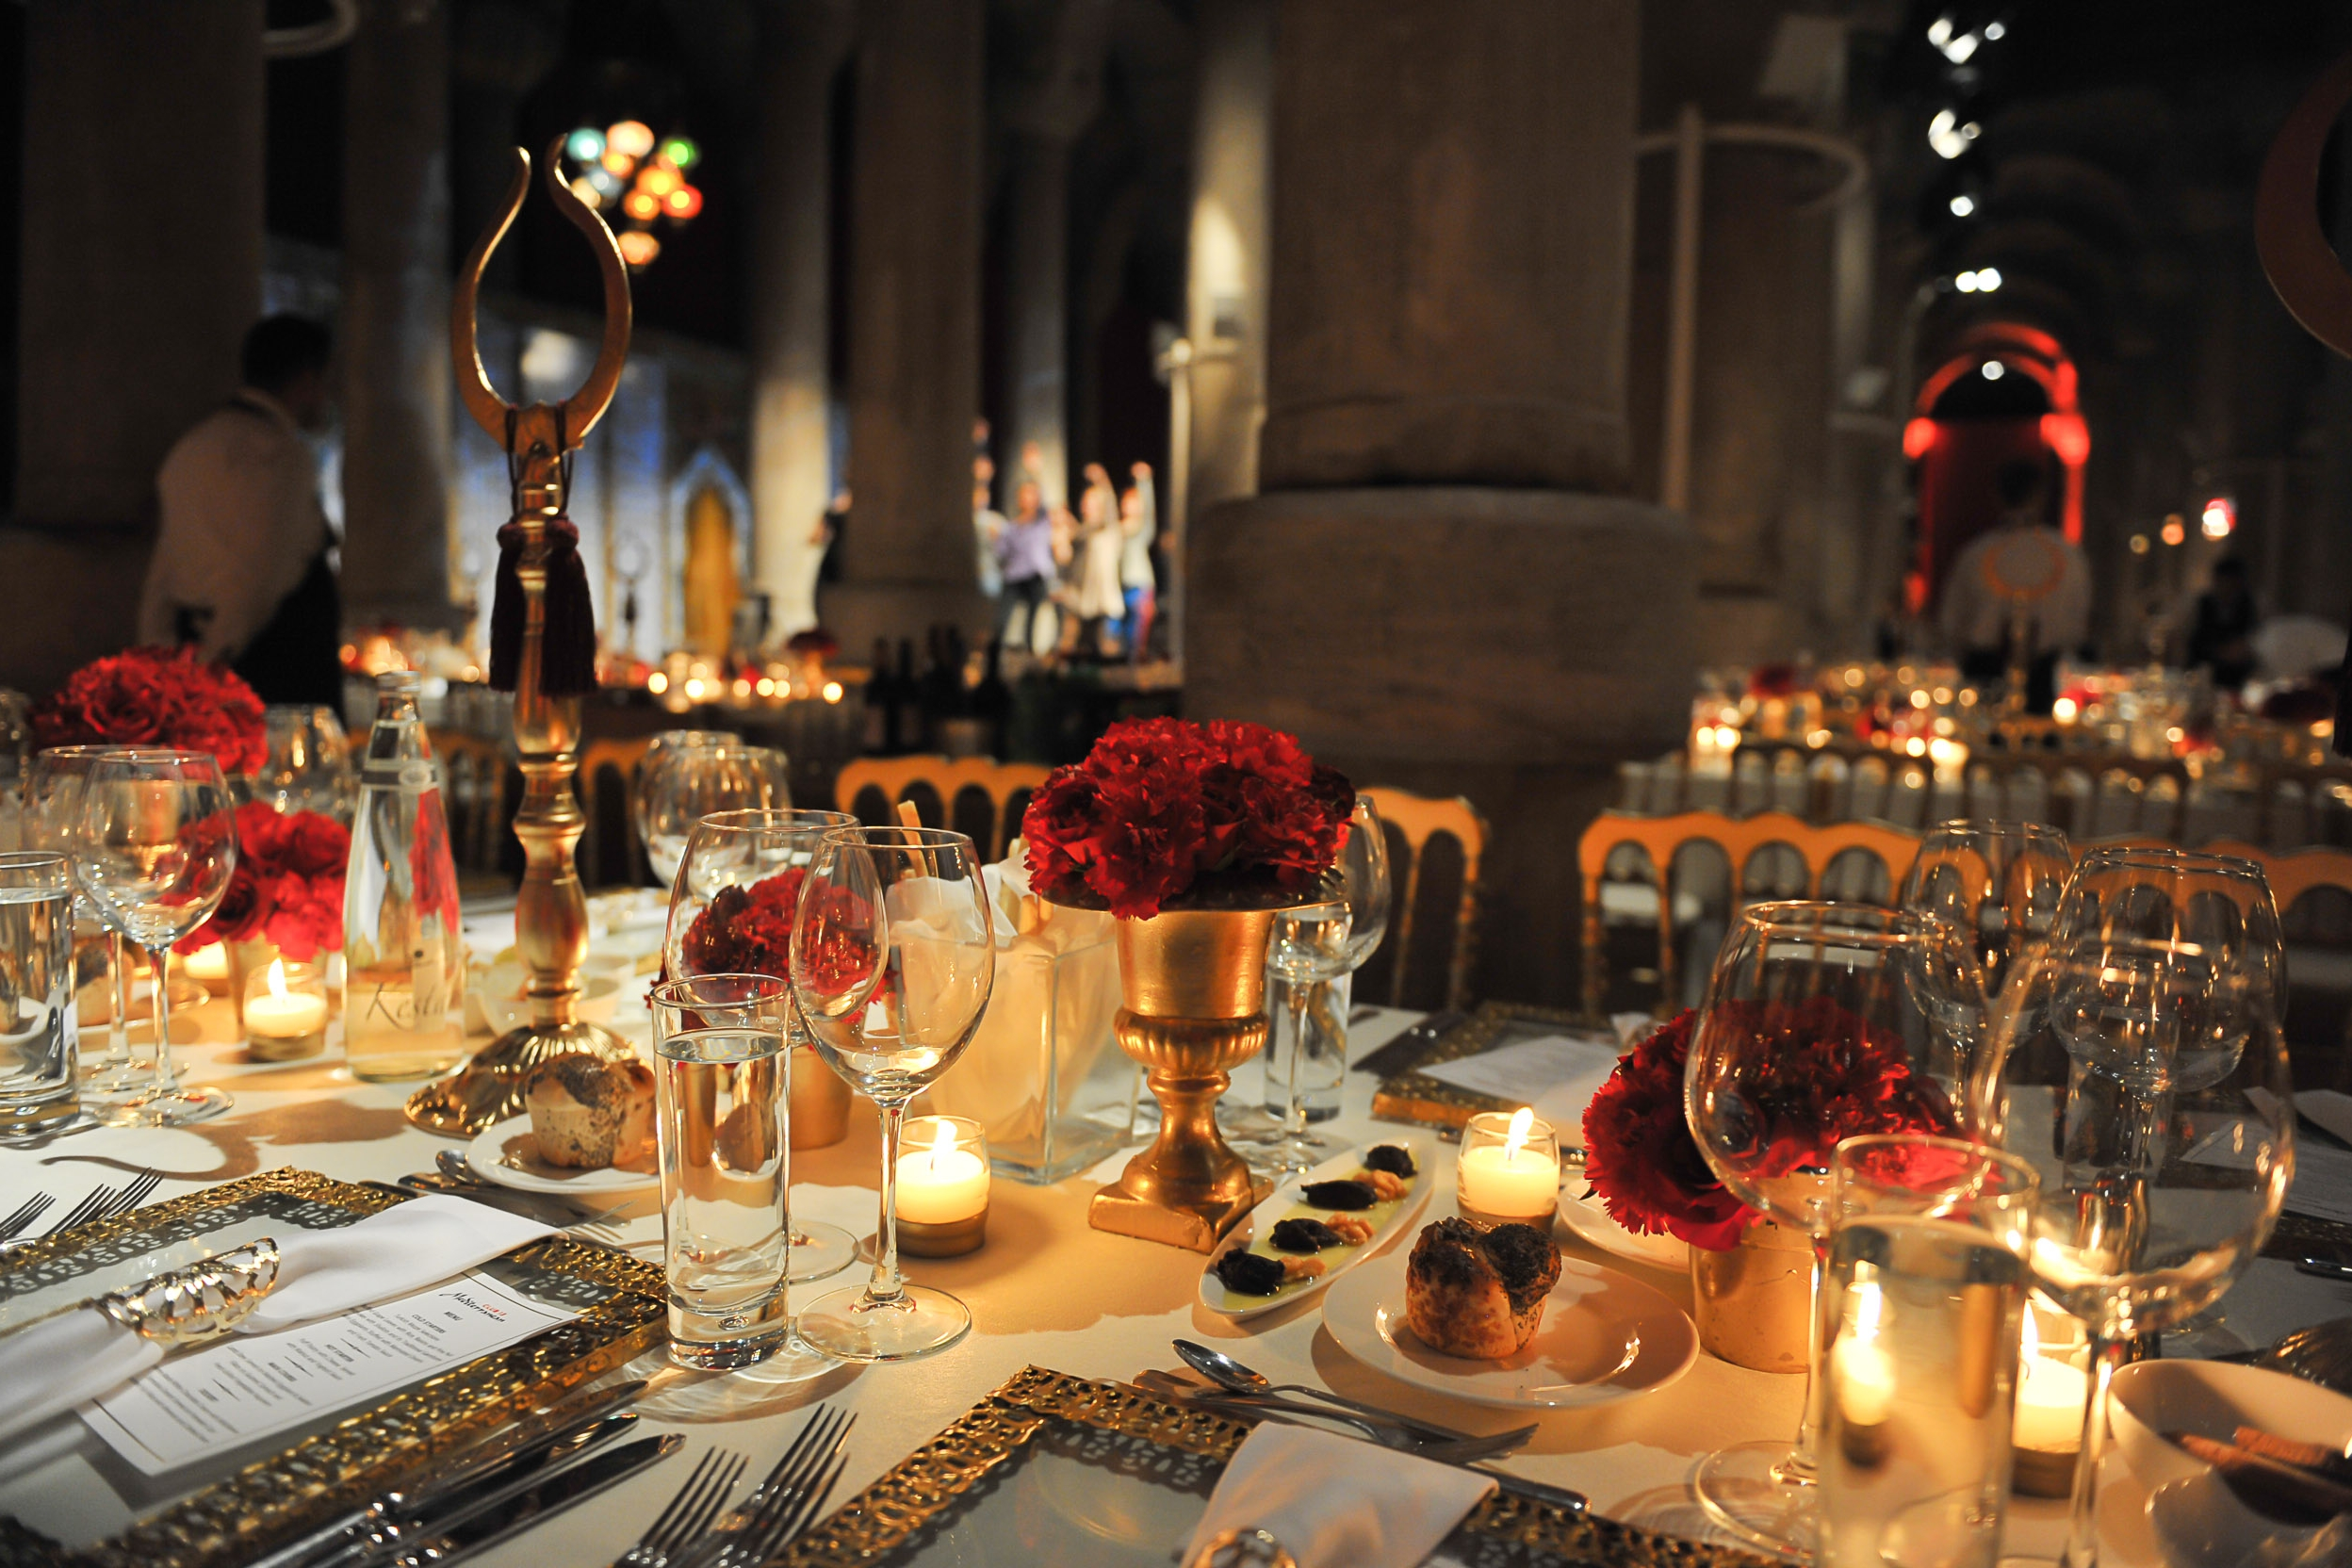 Gala in an Istanbul Cistern - An affair inspired by the Golden Age of the Topkapi Palace and the Ottoman Empire.